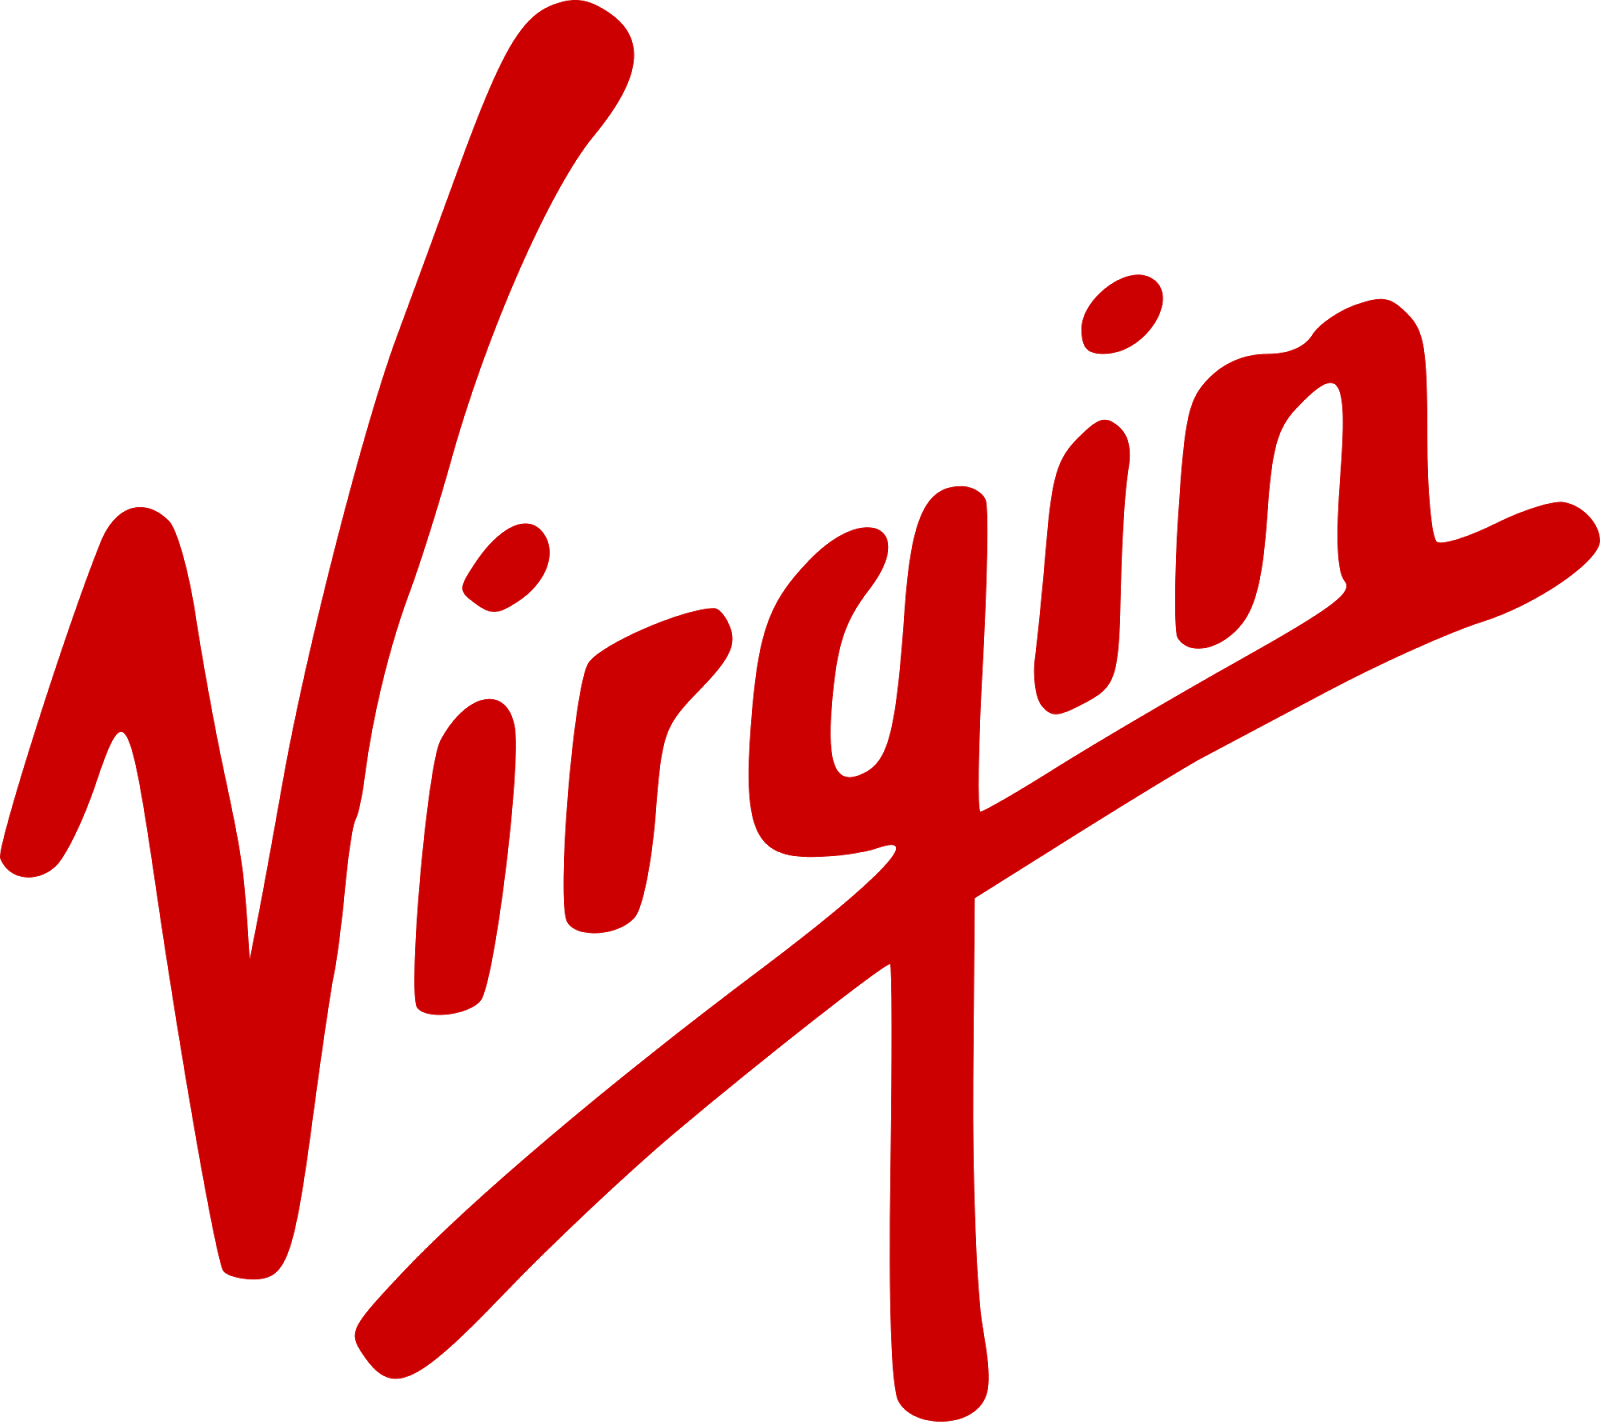 Virgin Mobile Assurance Wireless Customer Service Number 24 7